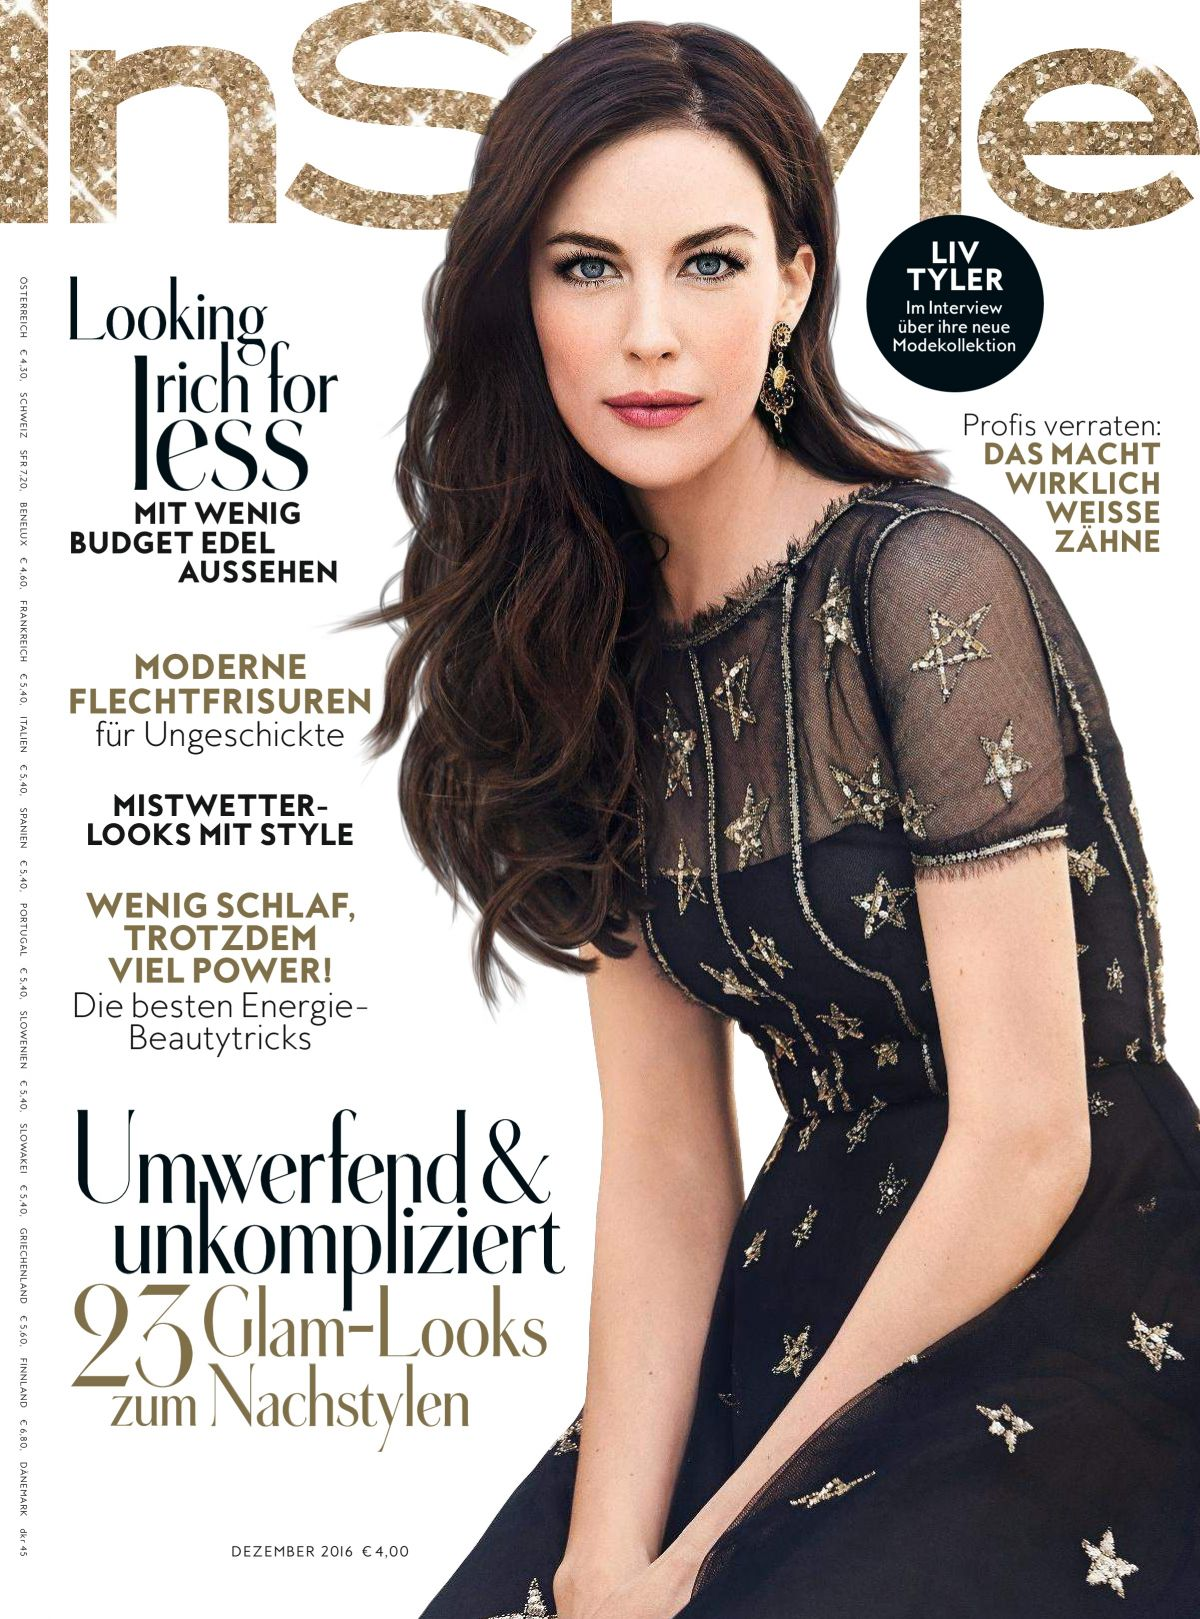 LIV TYLER in Instyle Magazine, Germany December 2016 Issue